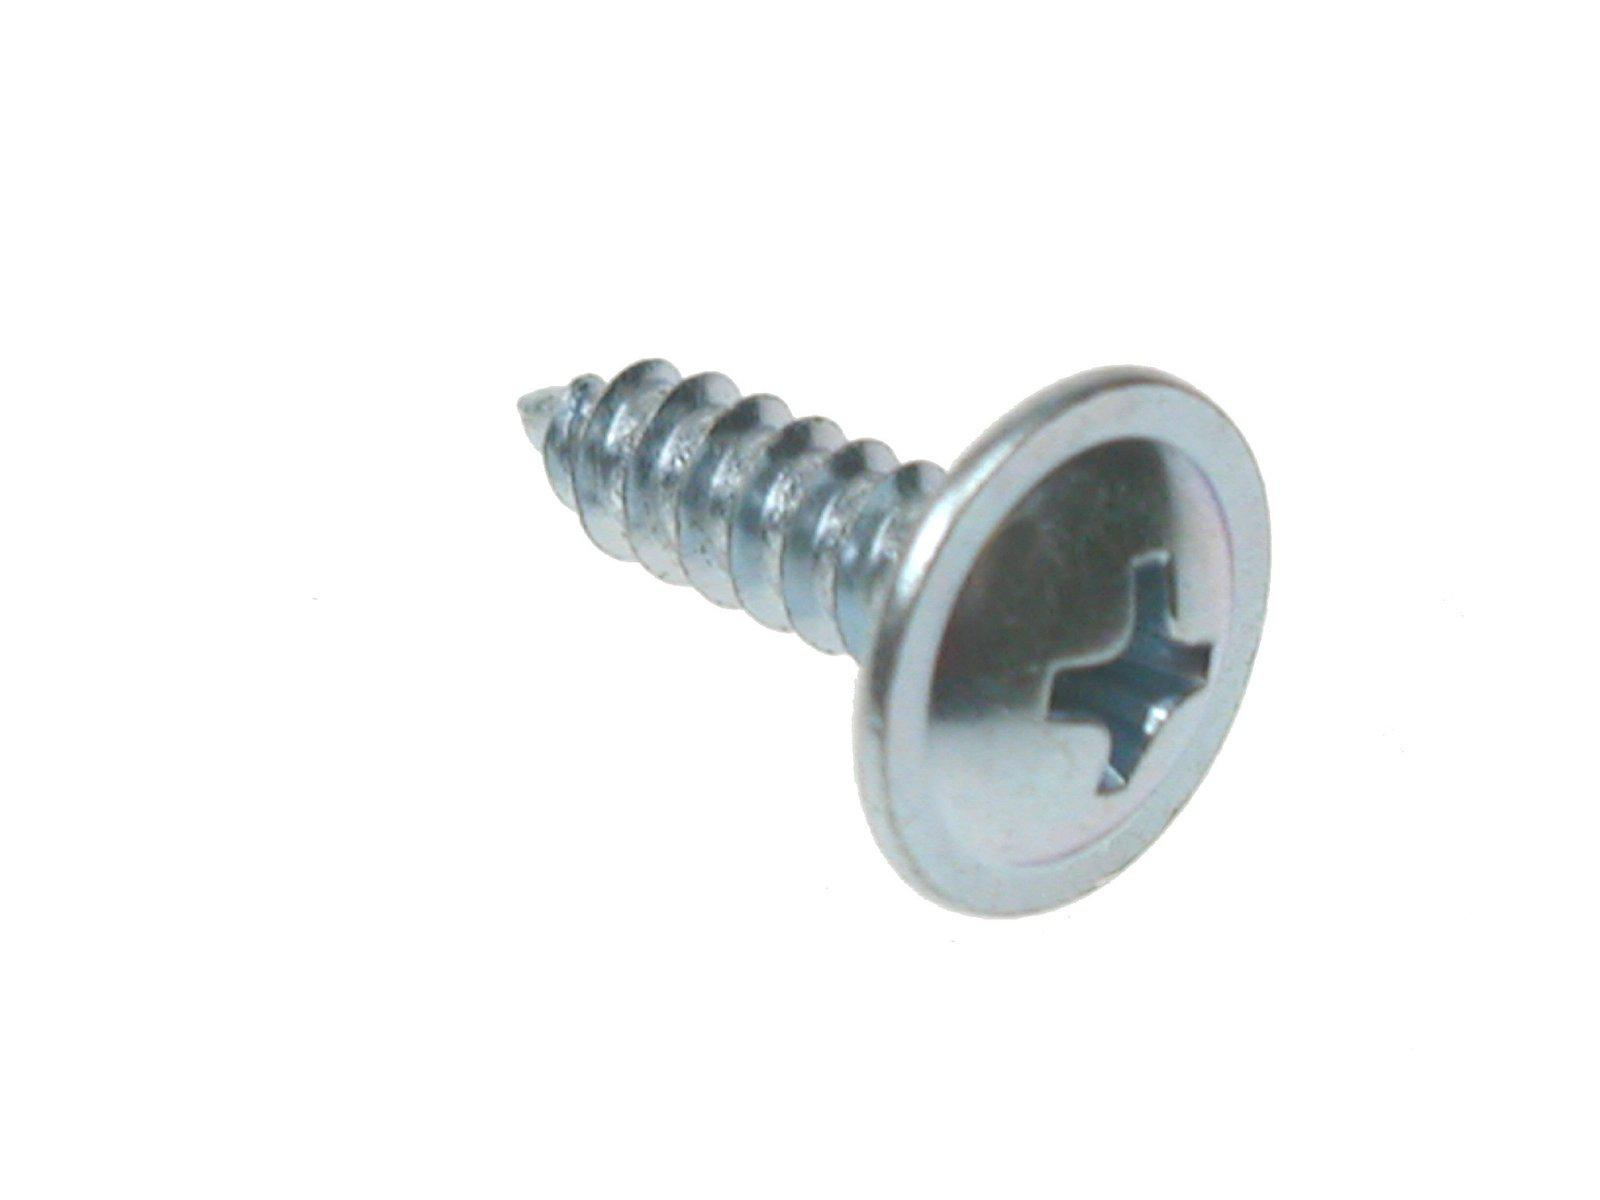 3.5 x 13mm, Wafer, Sharp Point, Drywall Screws, Zinc., Hardware by Fixaball